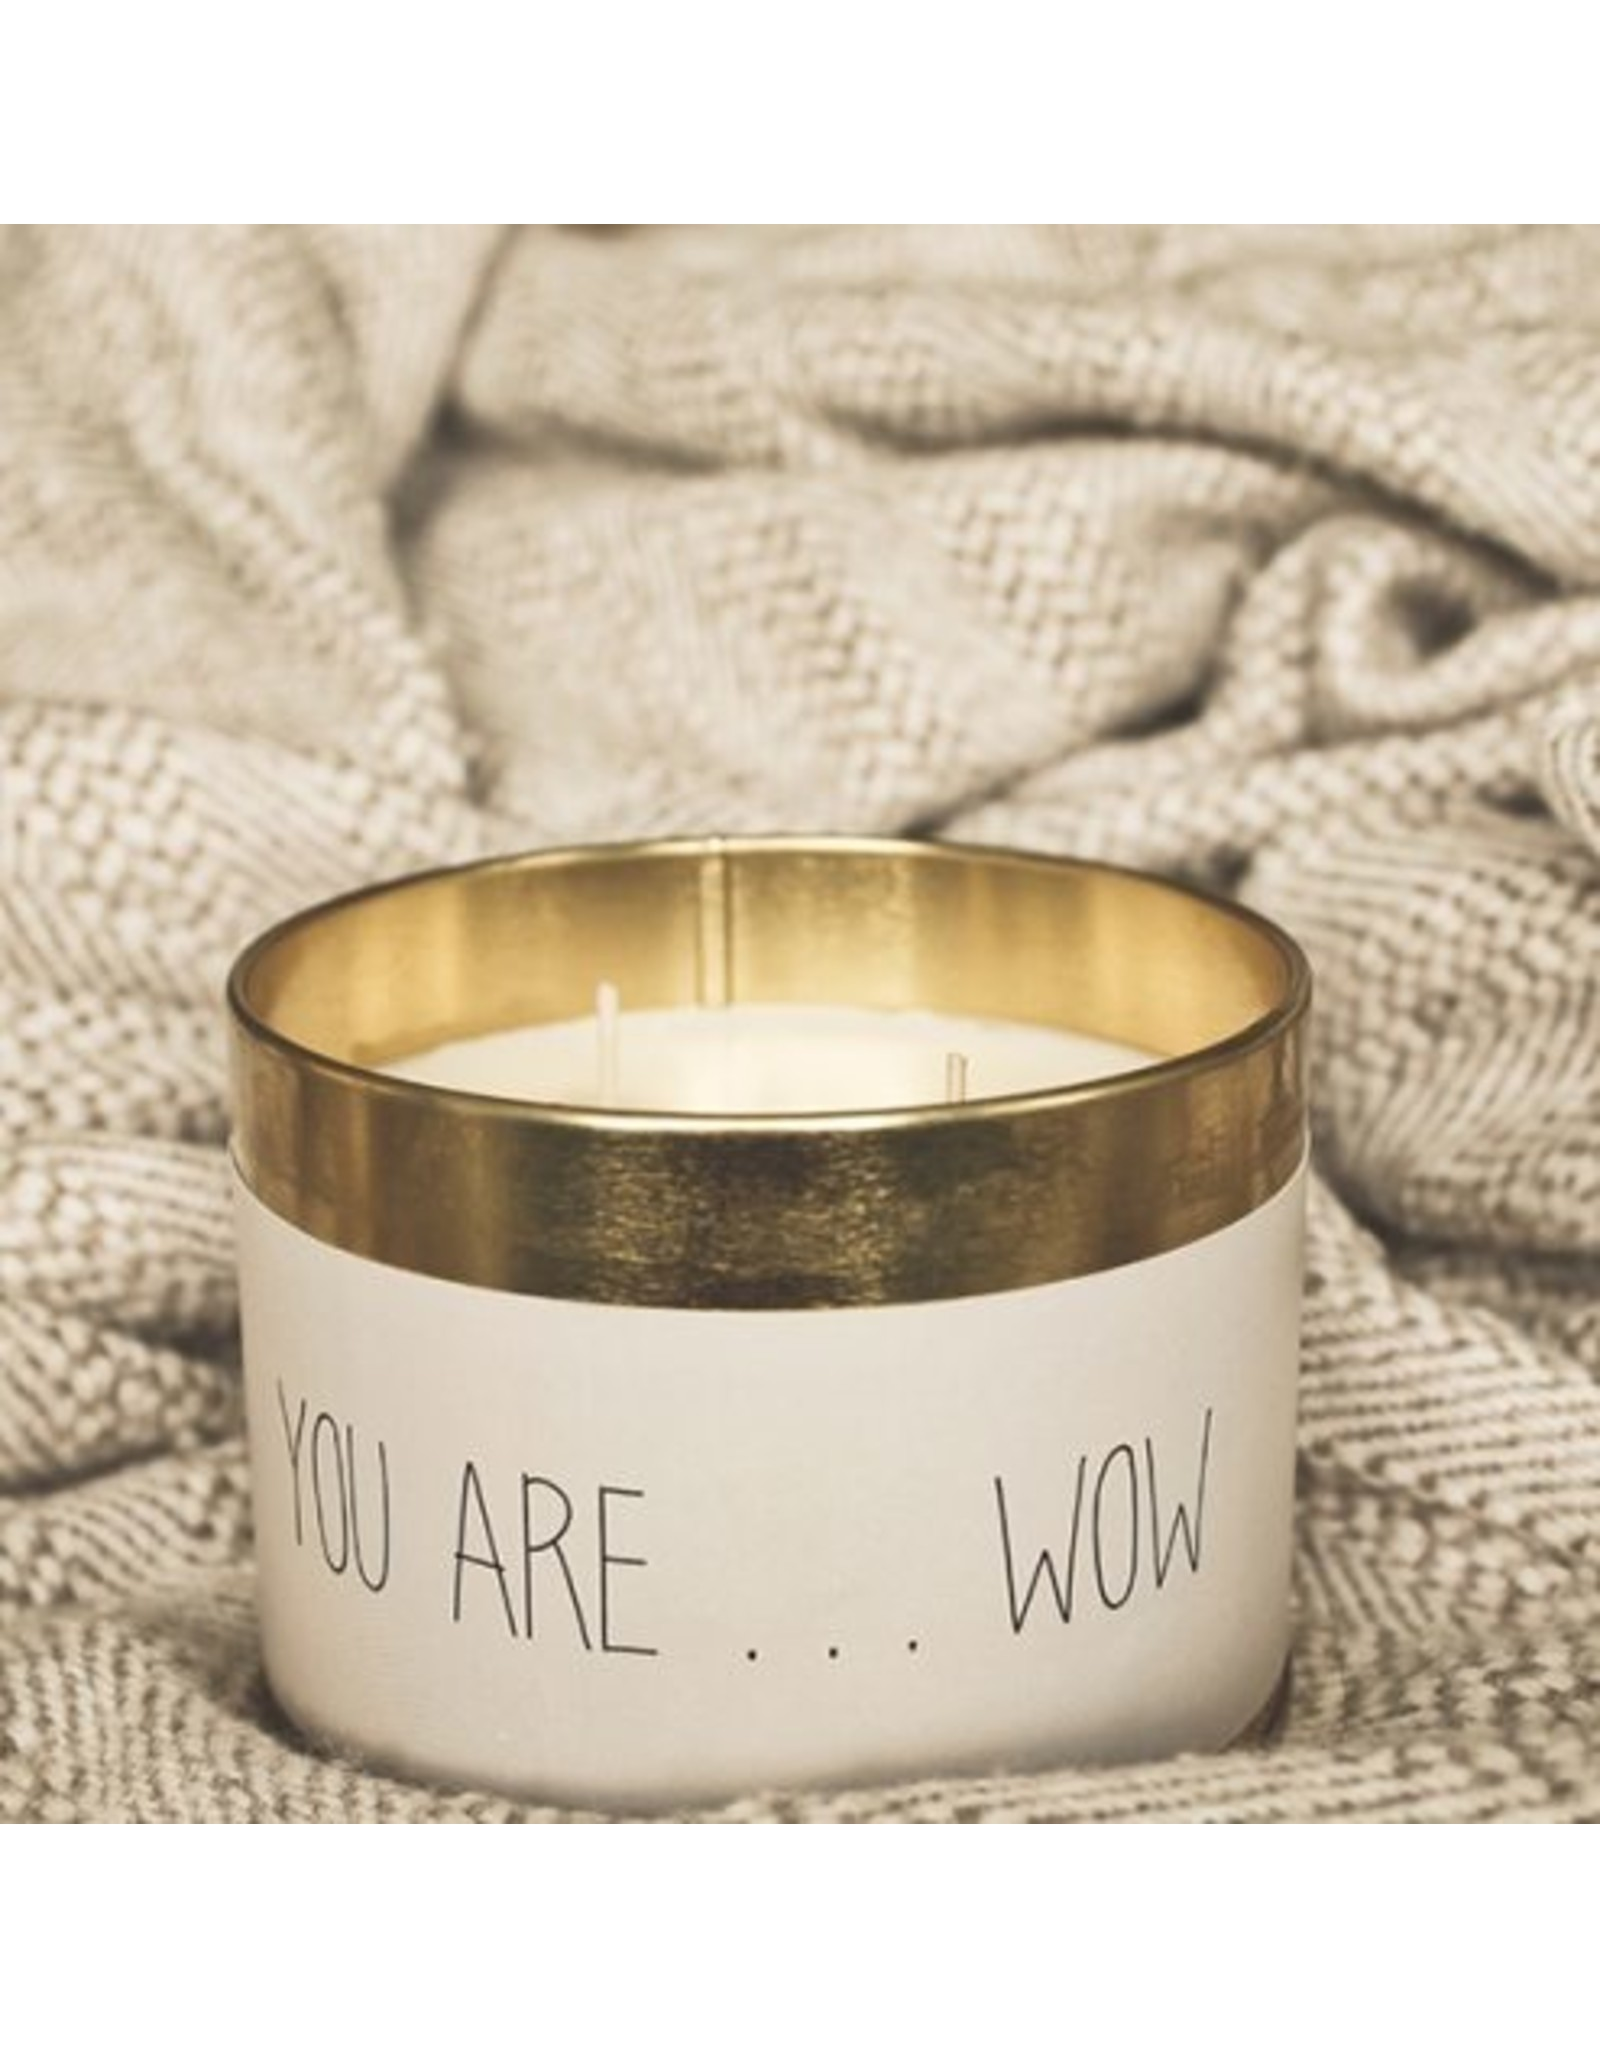 My flame Lifestyle Sojakaars | You Are Wow | Geur: Warm  Cashmere